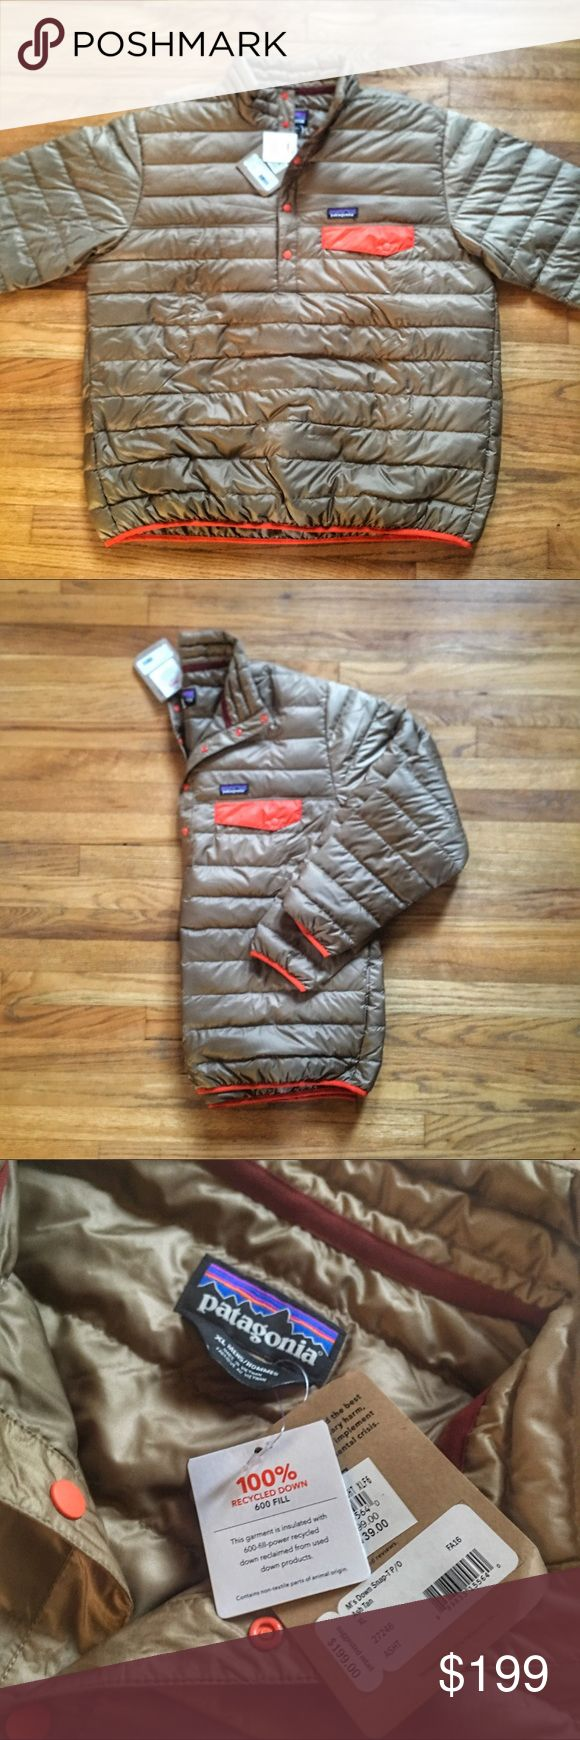 NWT Patagonia Down Snap-T Pullover Jacket PRICE IS FIRM - OFFERS NOT ACCEPTED.  NWT Patagonia Down Snap-T Pullover Jacket - Retails $199.  Size XL.  New with tags - never worn.  Color is Ash Tan with orange accents. Patagonia Jackets & Coats Puffers